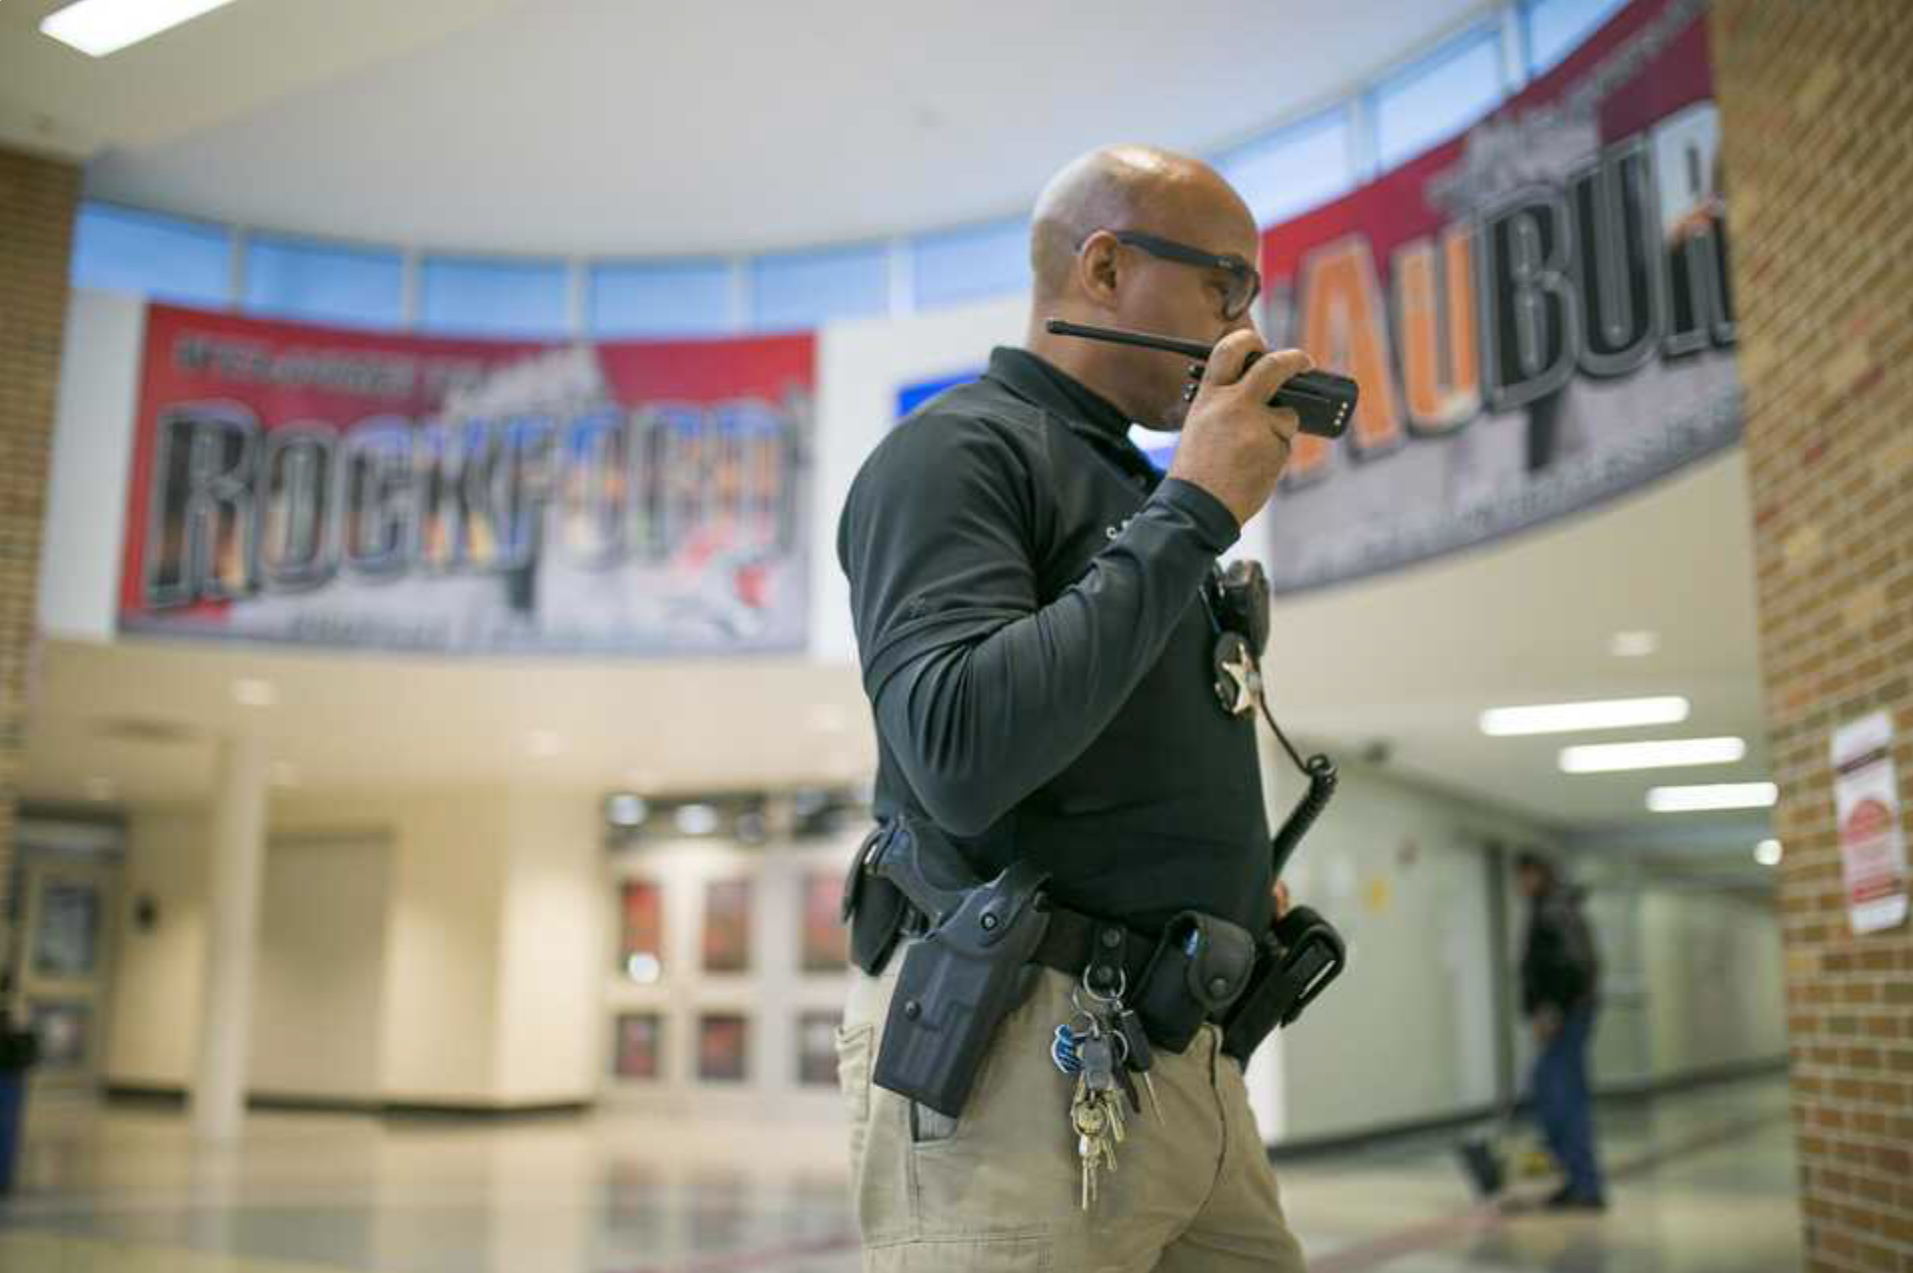 School resource officer Curtis Sockwell, a member of the Rockford Police Department, walks the halls on Thursday, Nov. 7, 2019, at Auburn High School in Rockford. [SCOTT P. YATES/RRSTAR.COM STAFF]